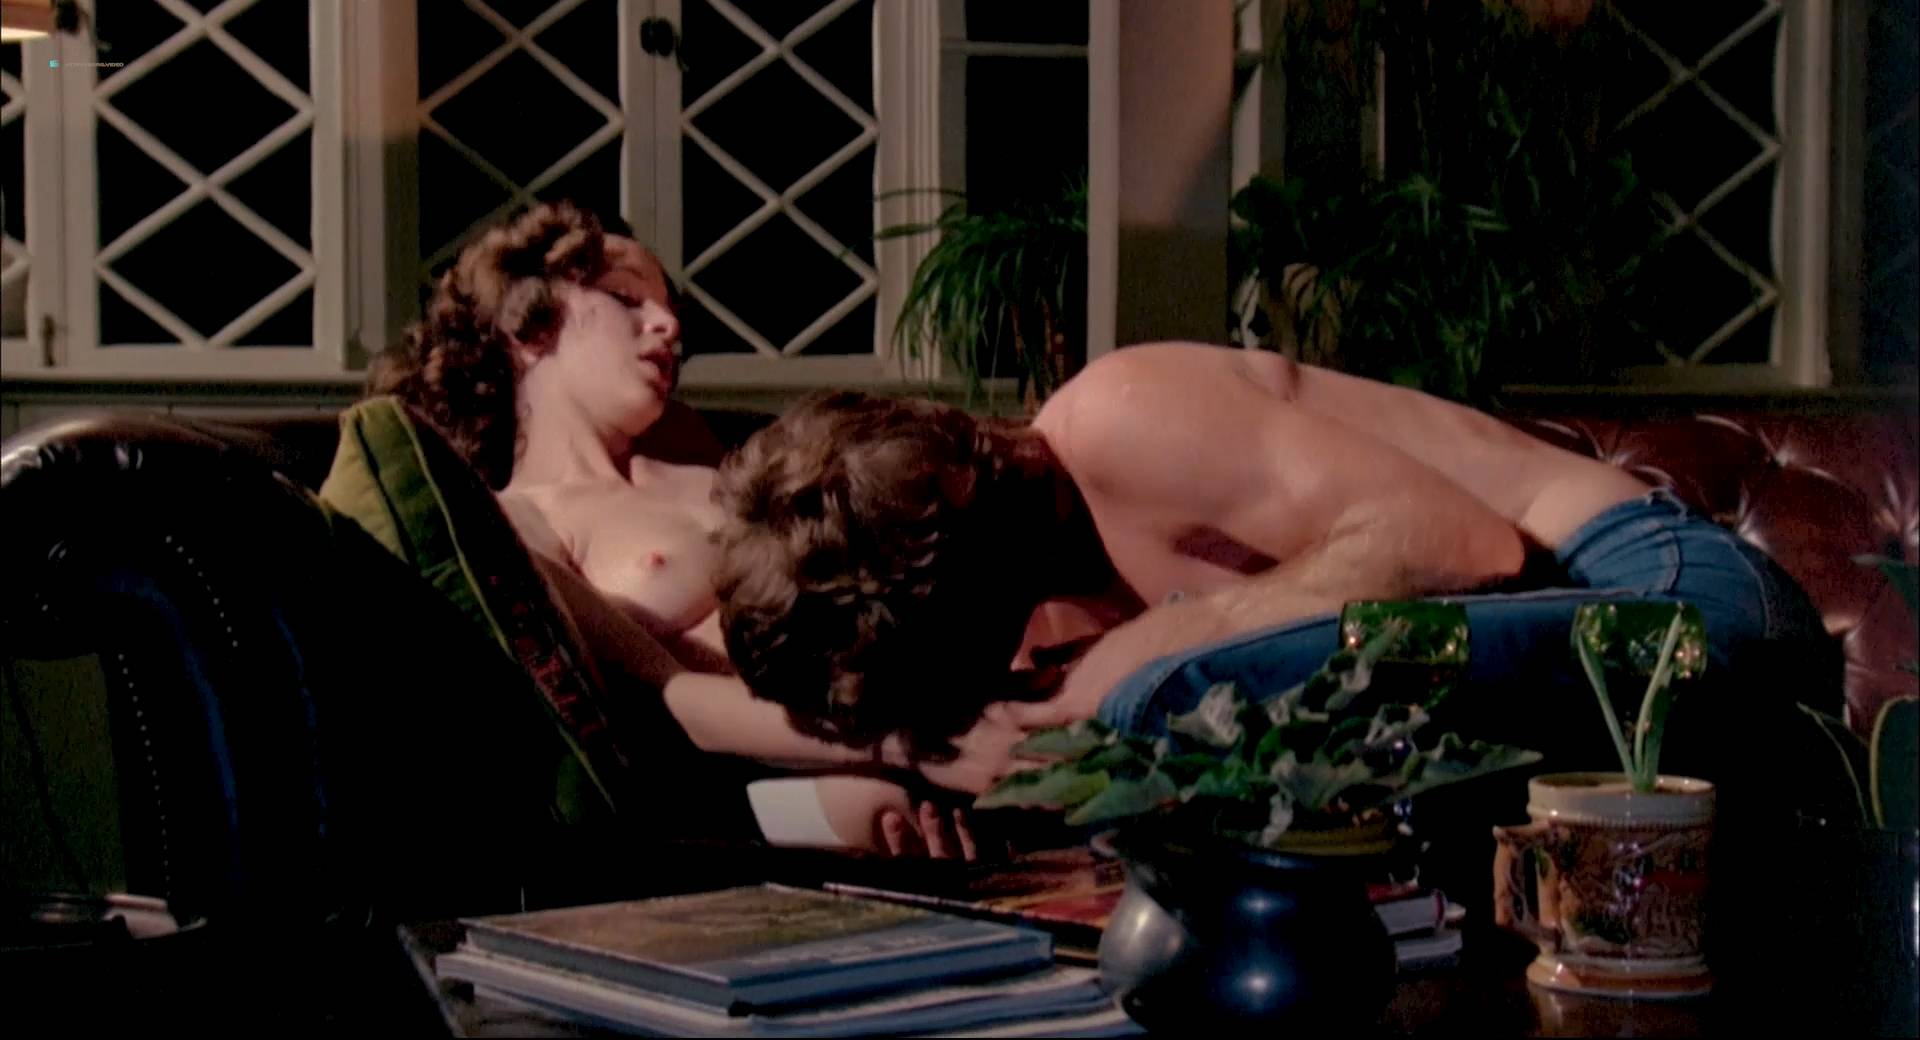 Tara Nude Sex Video 35